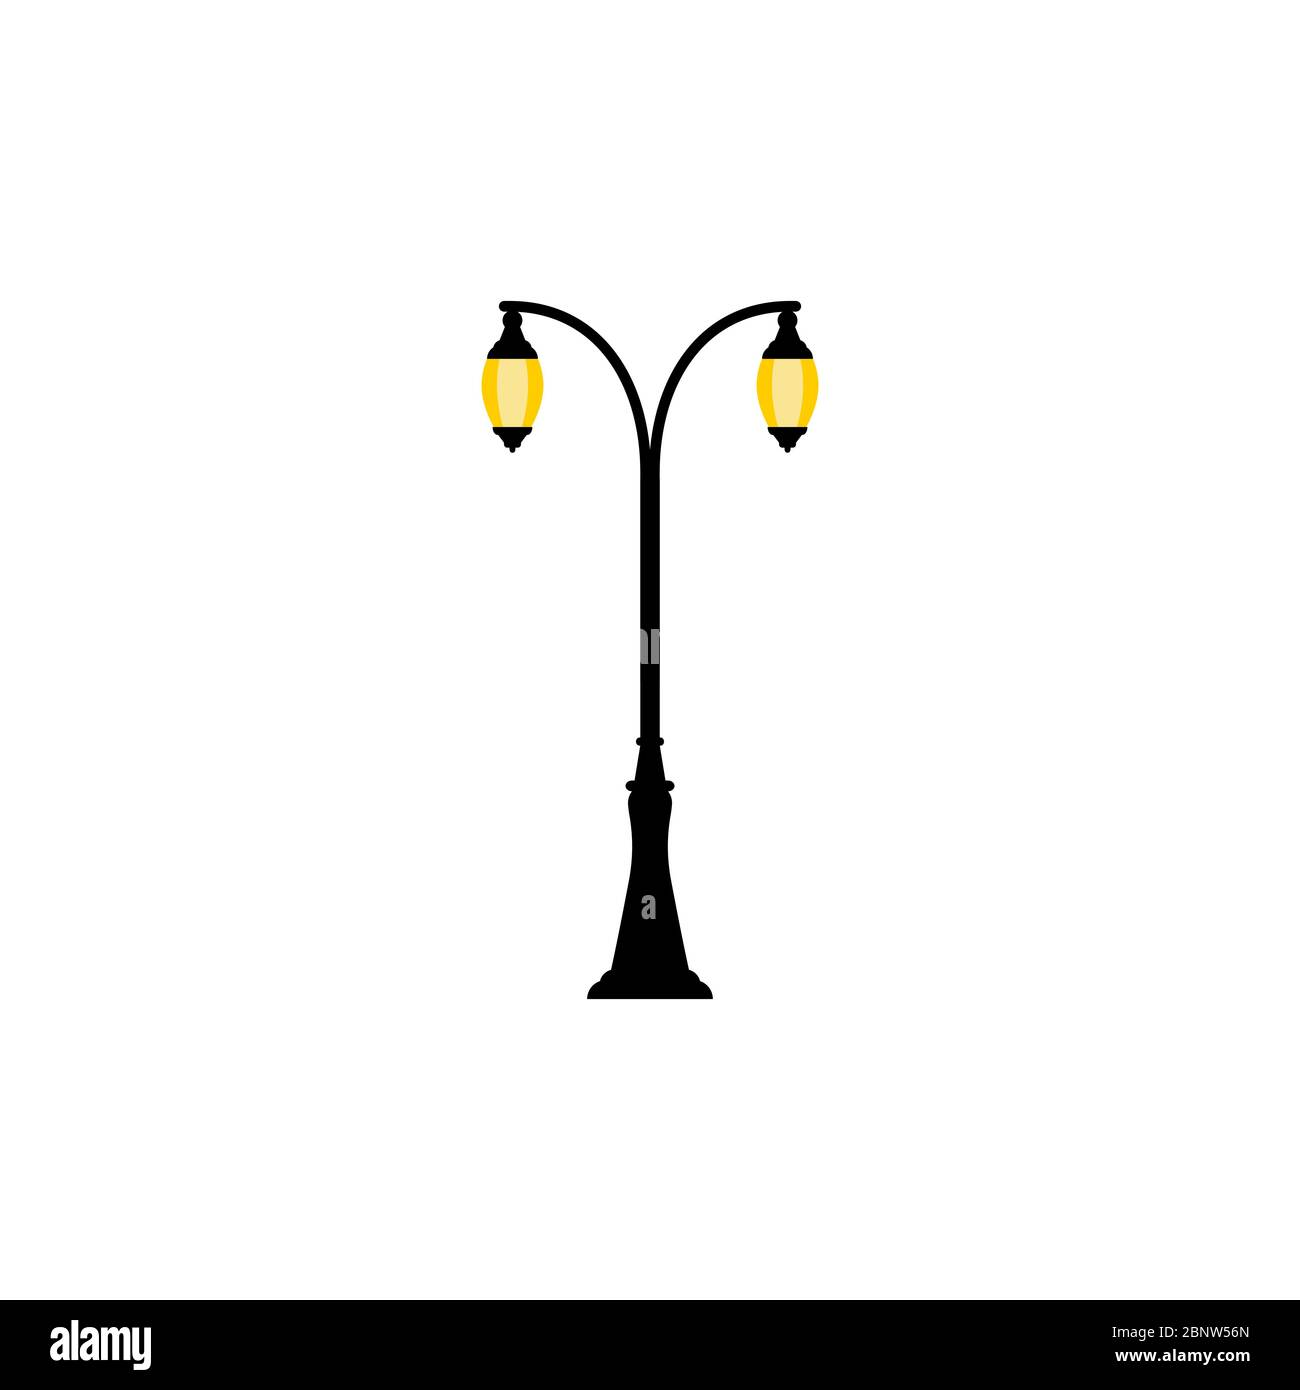 Vintage streetlight symbol. Vector retro object with two lamps isolated on white background Stock Vector